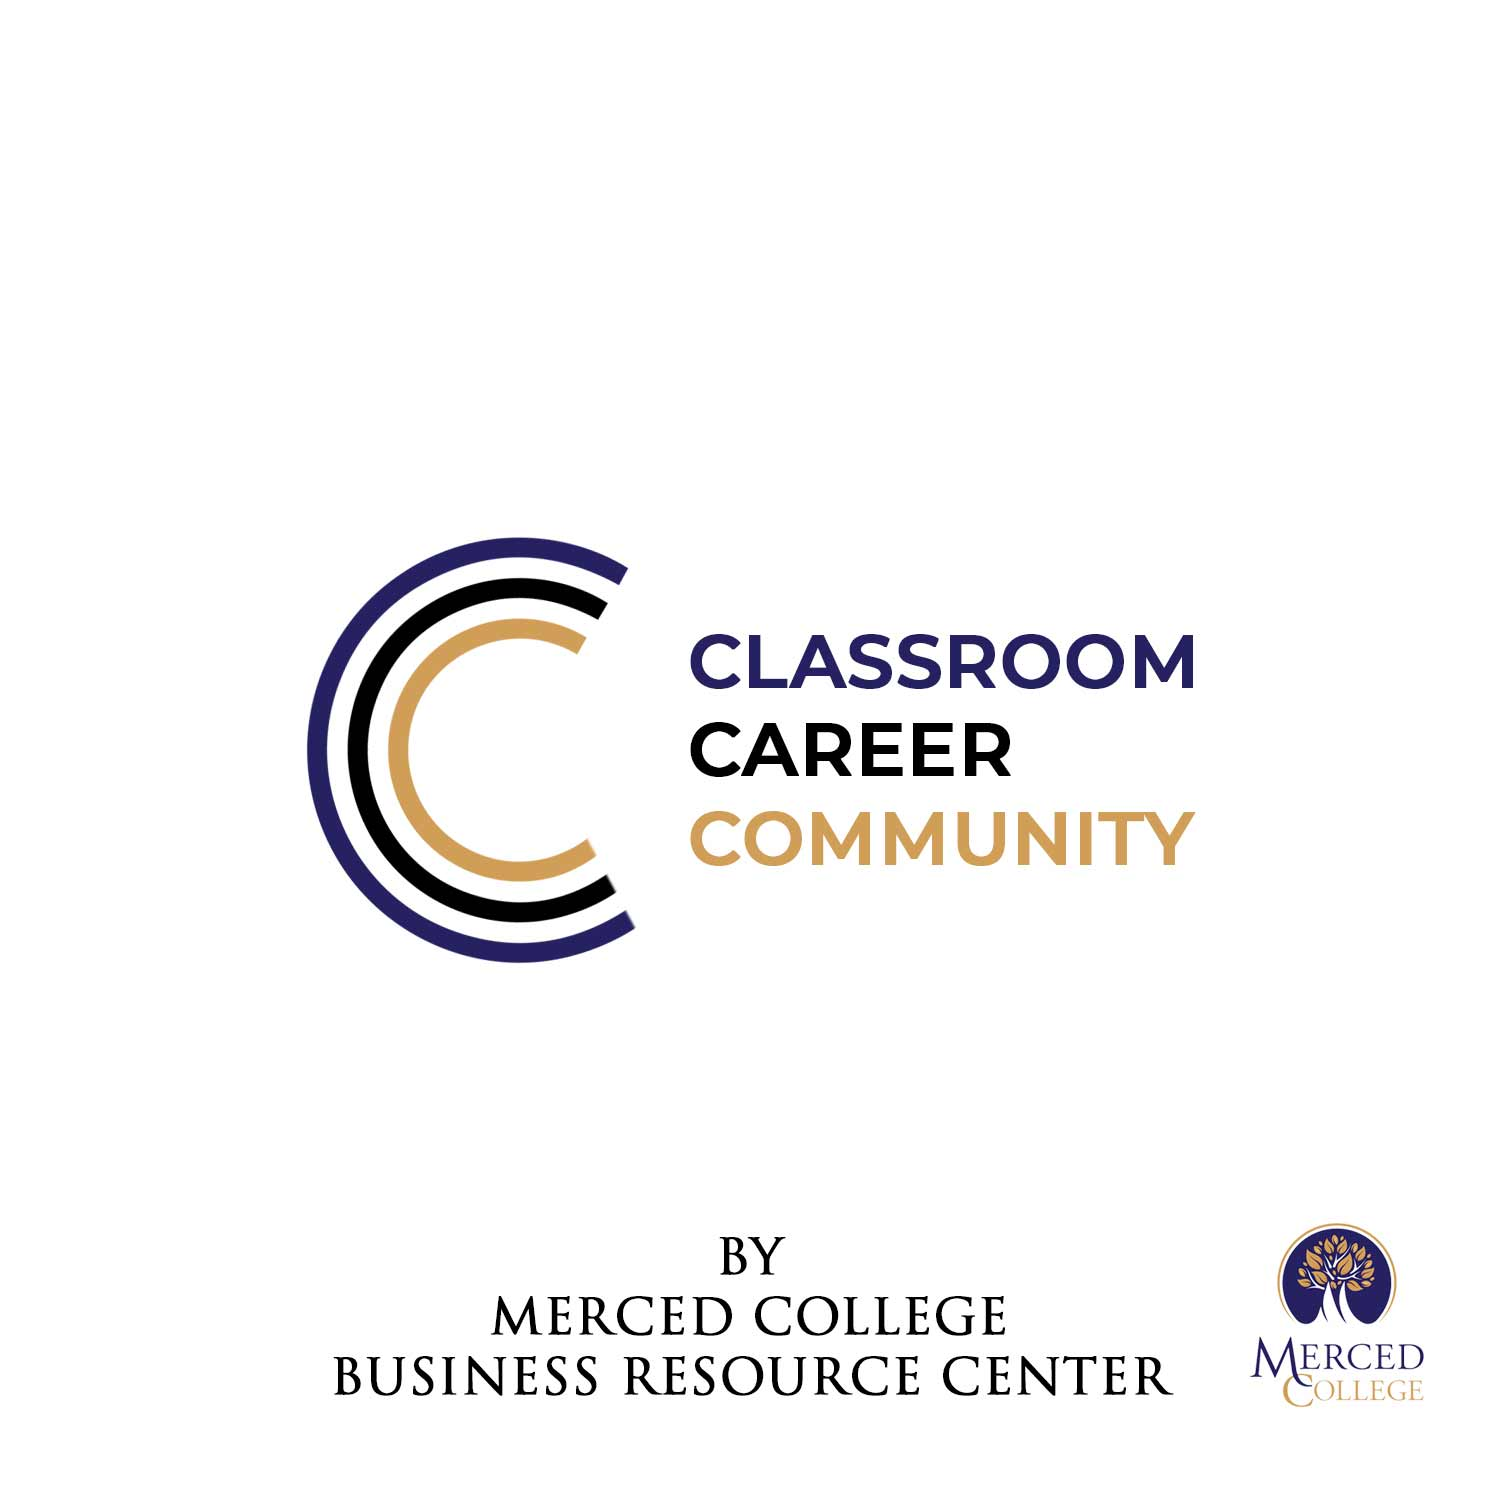 Classroom, Career, Community